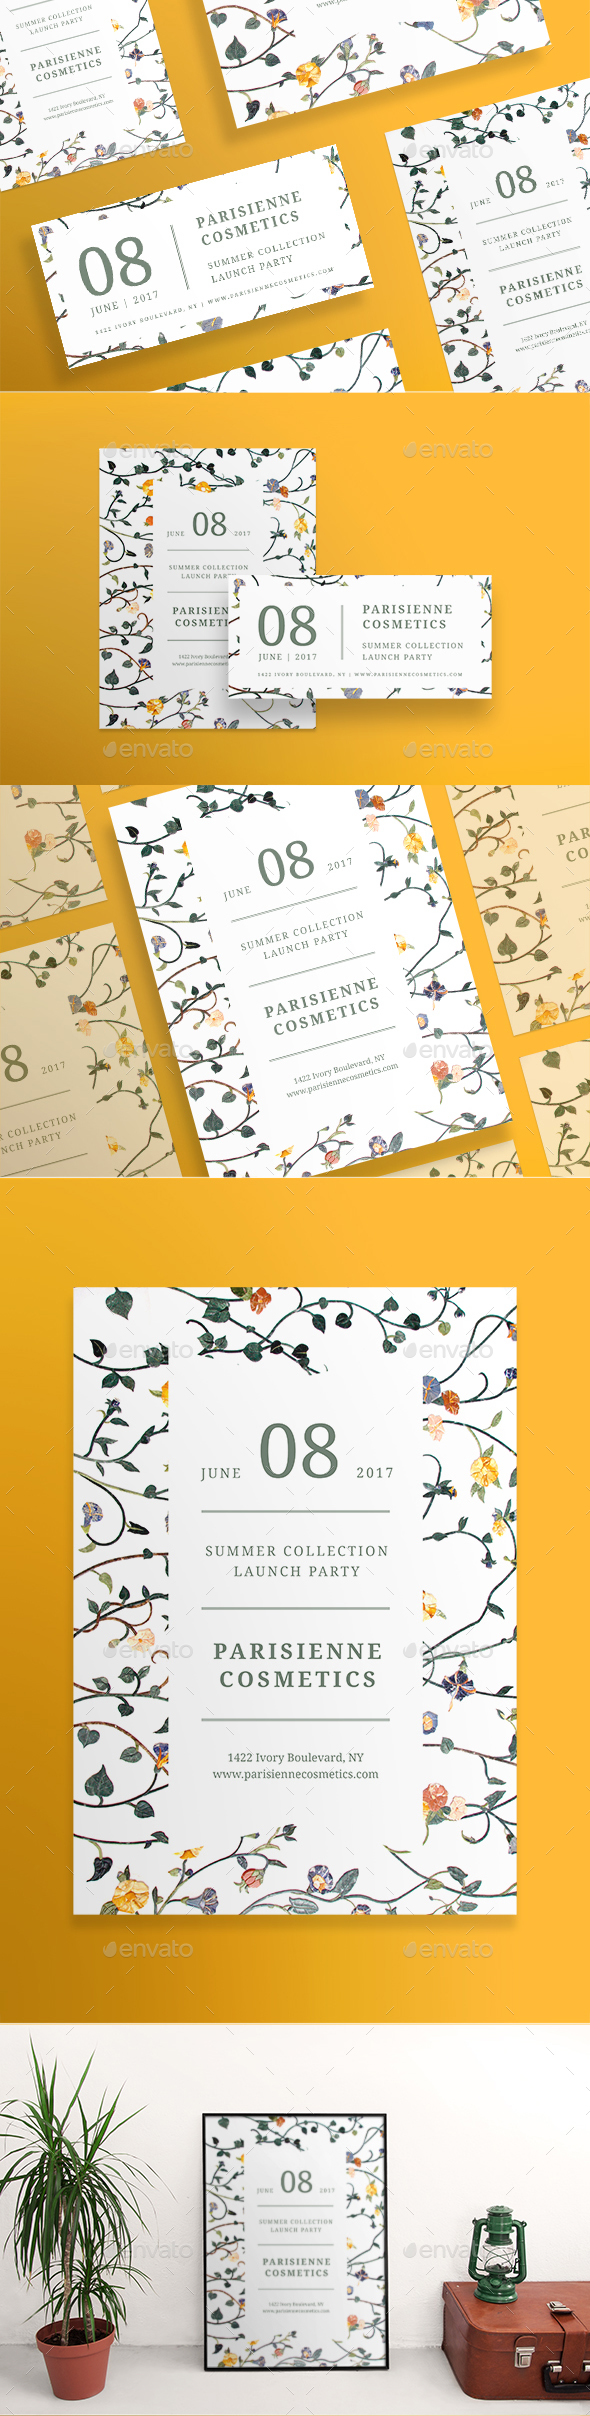 Pariseienne Cosmetics Flyers - Miscellaneous Events